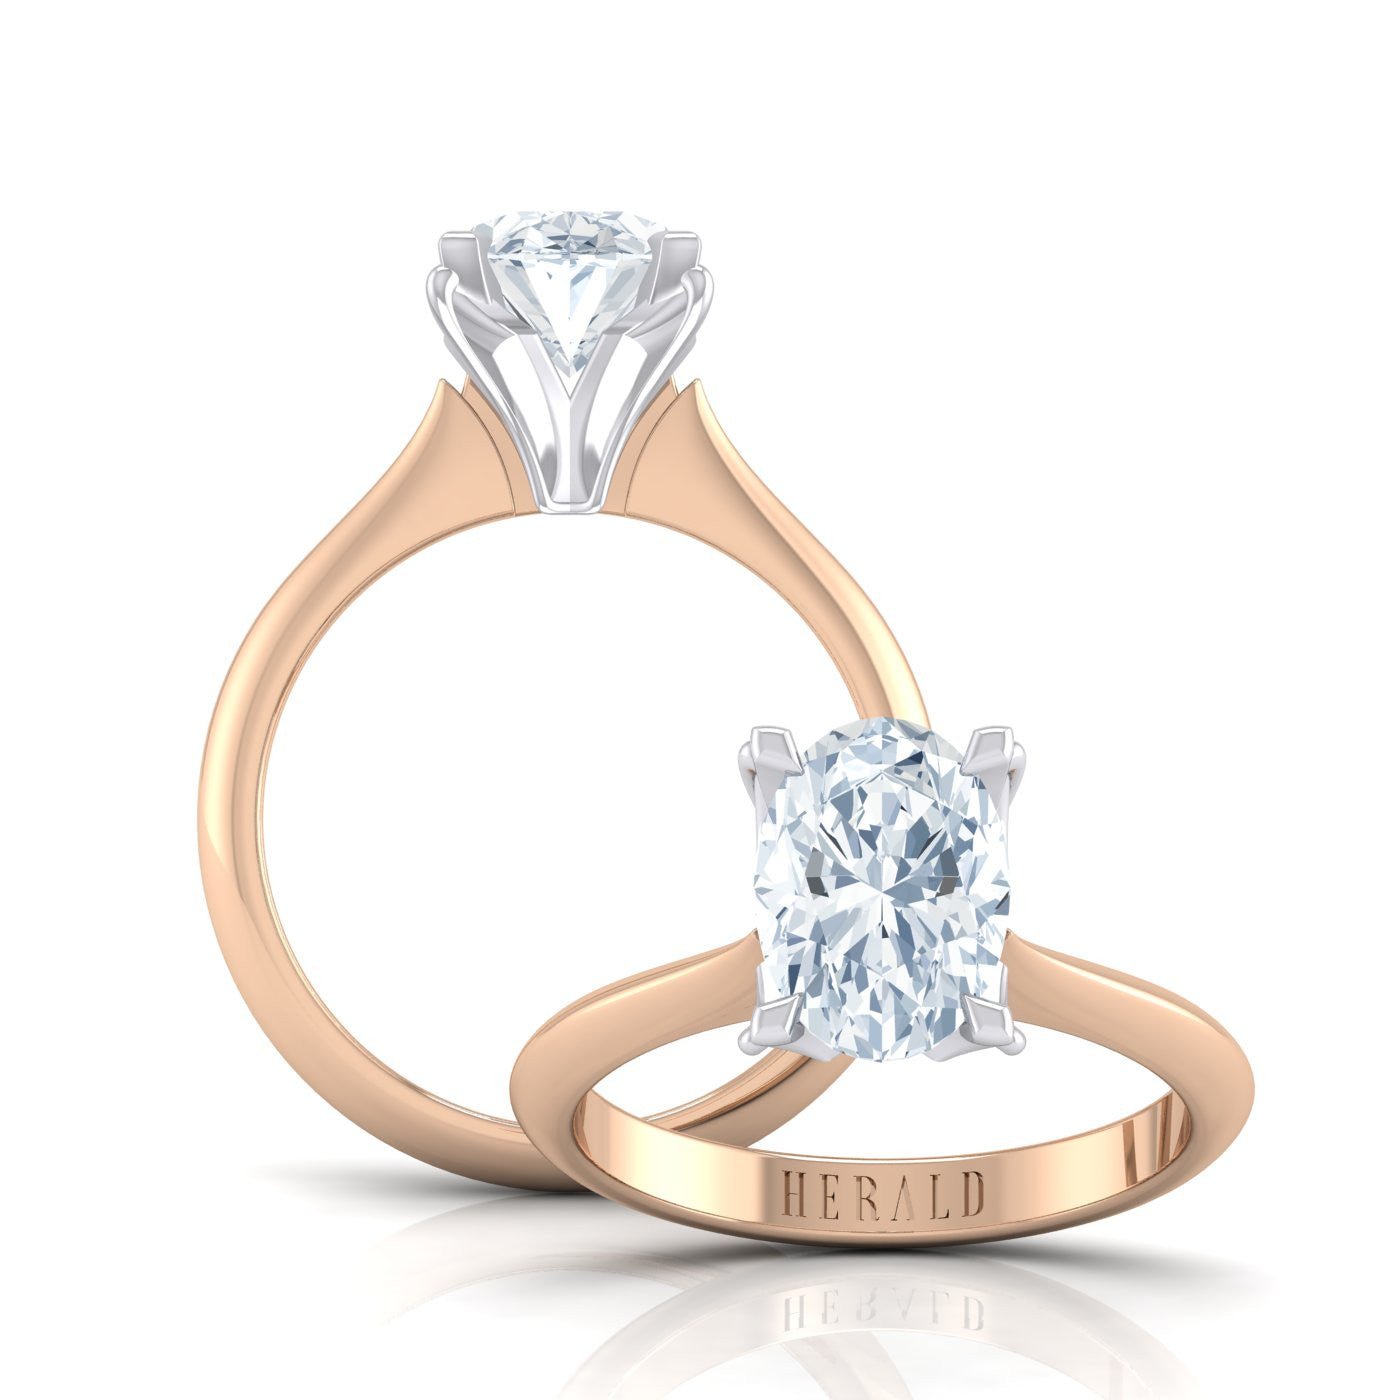 18kt Rose Gold and Platinum Diamond Engagement Ring